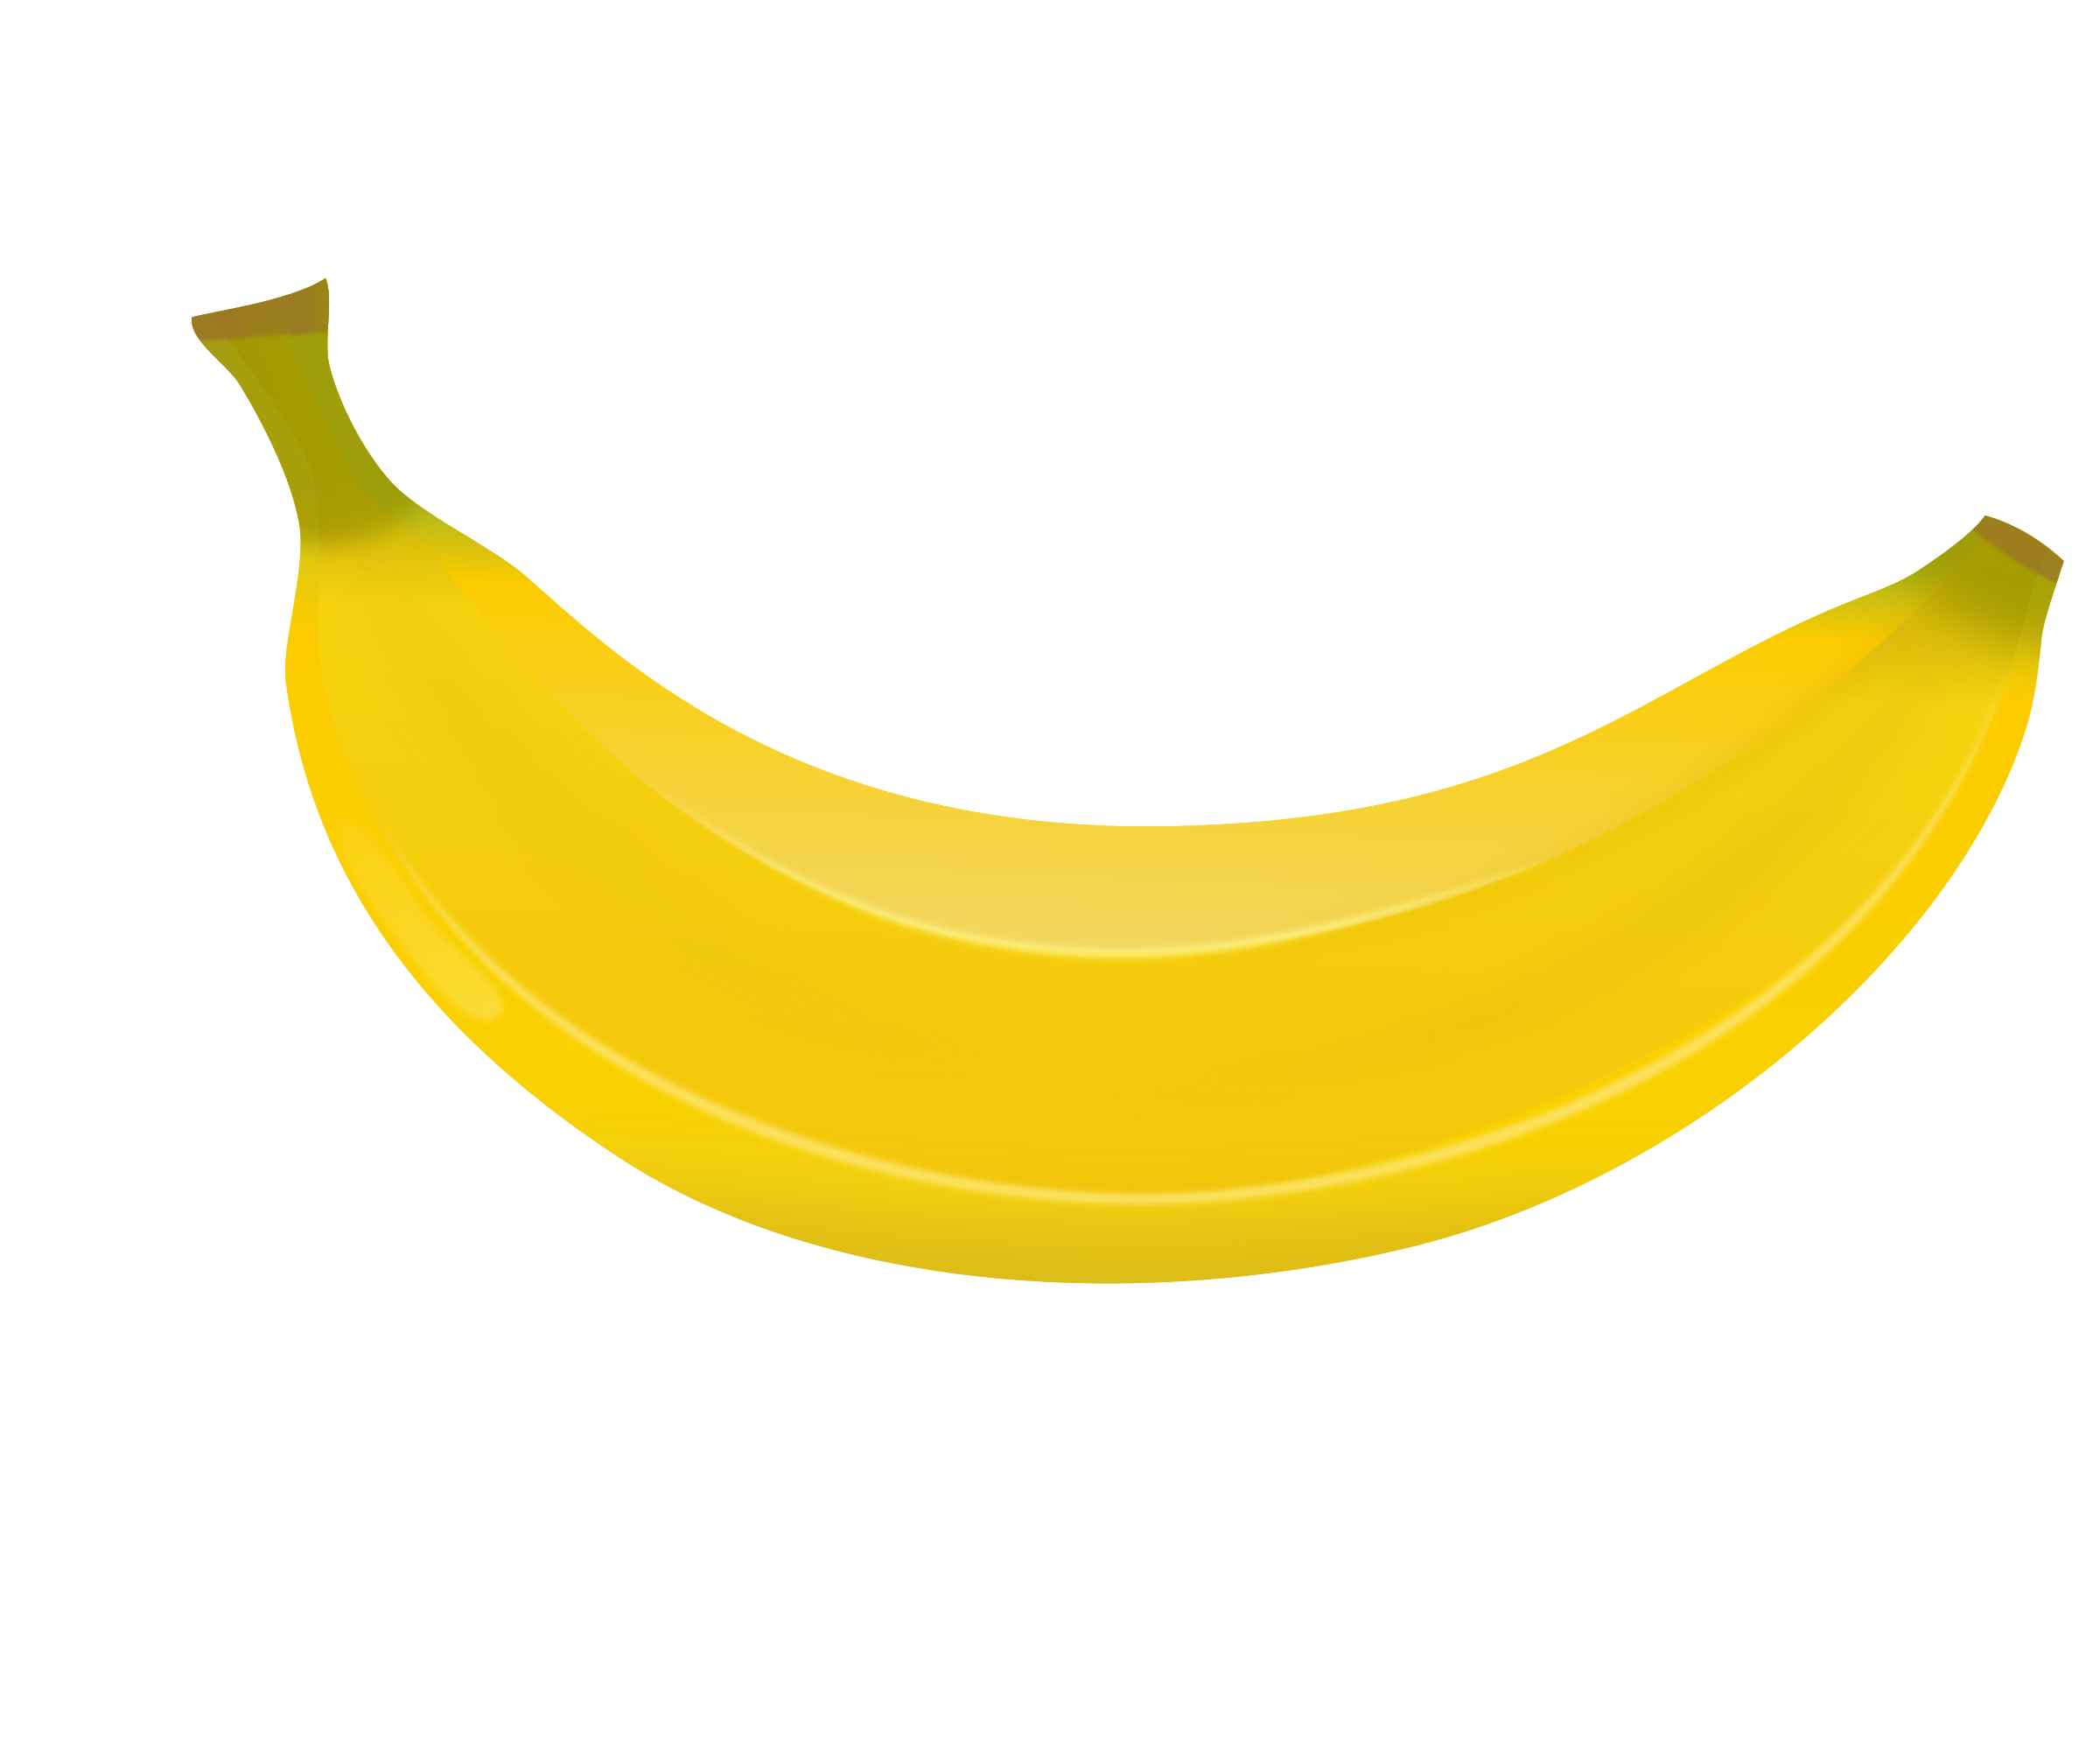 Bananas transparent pdf. Banana icons png free